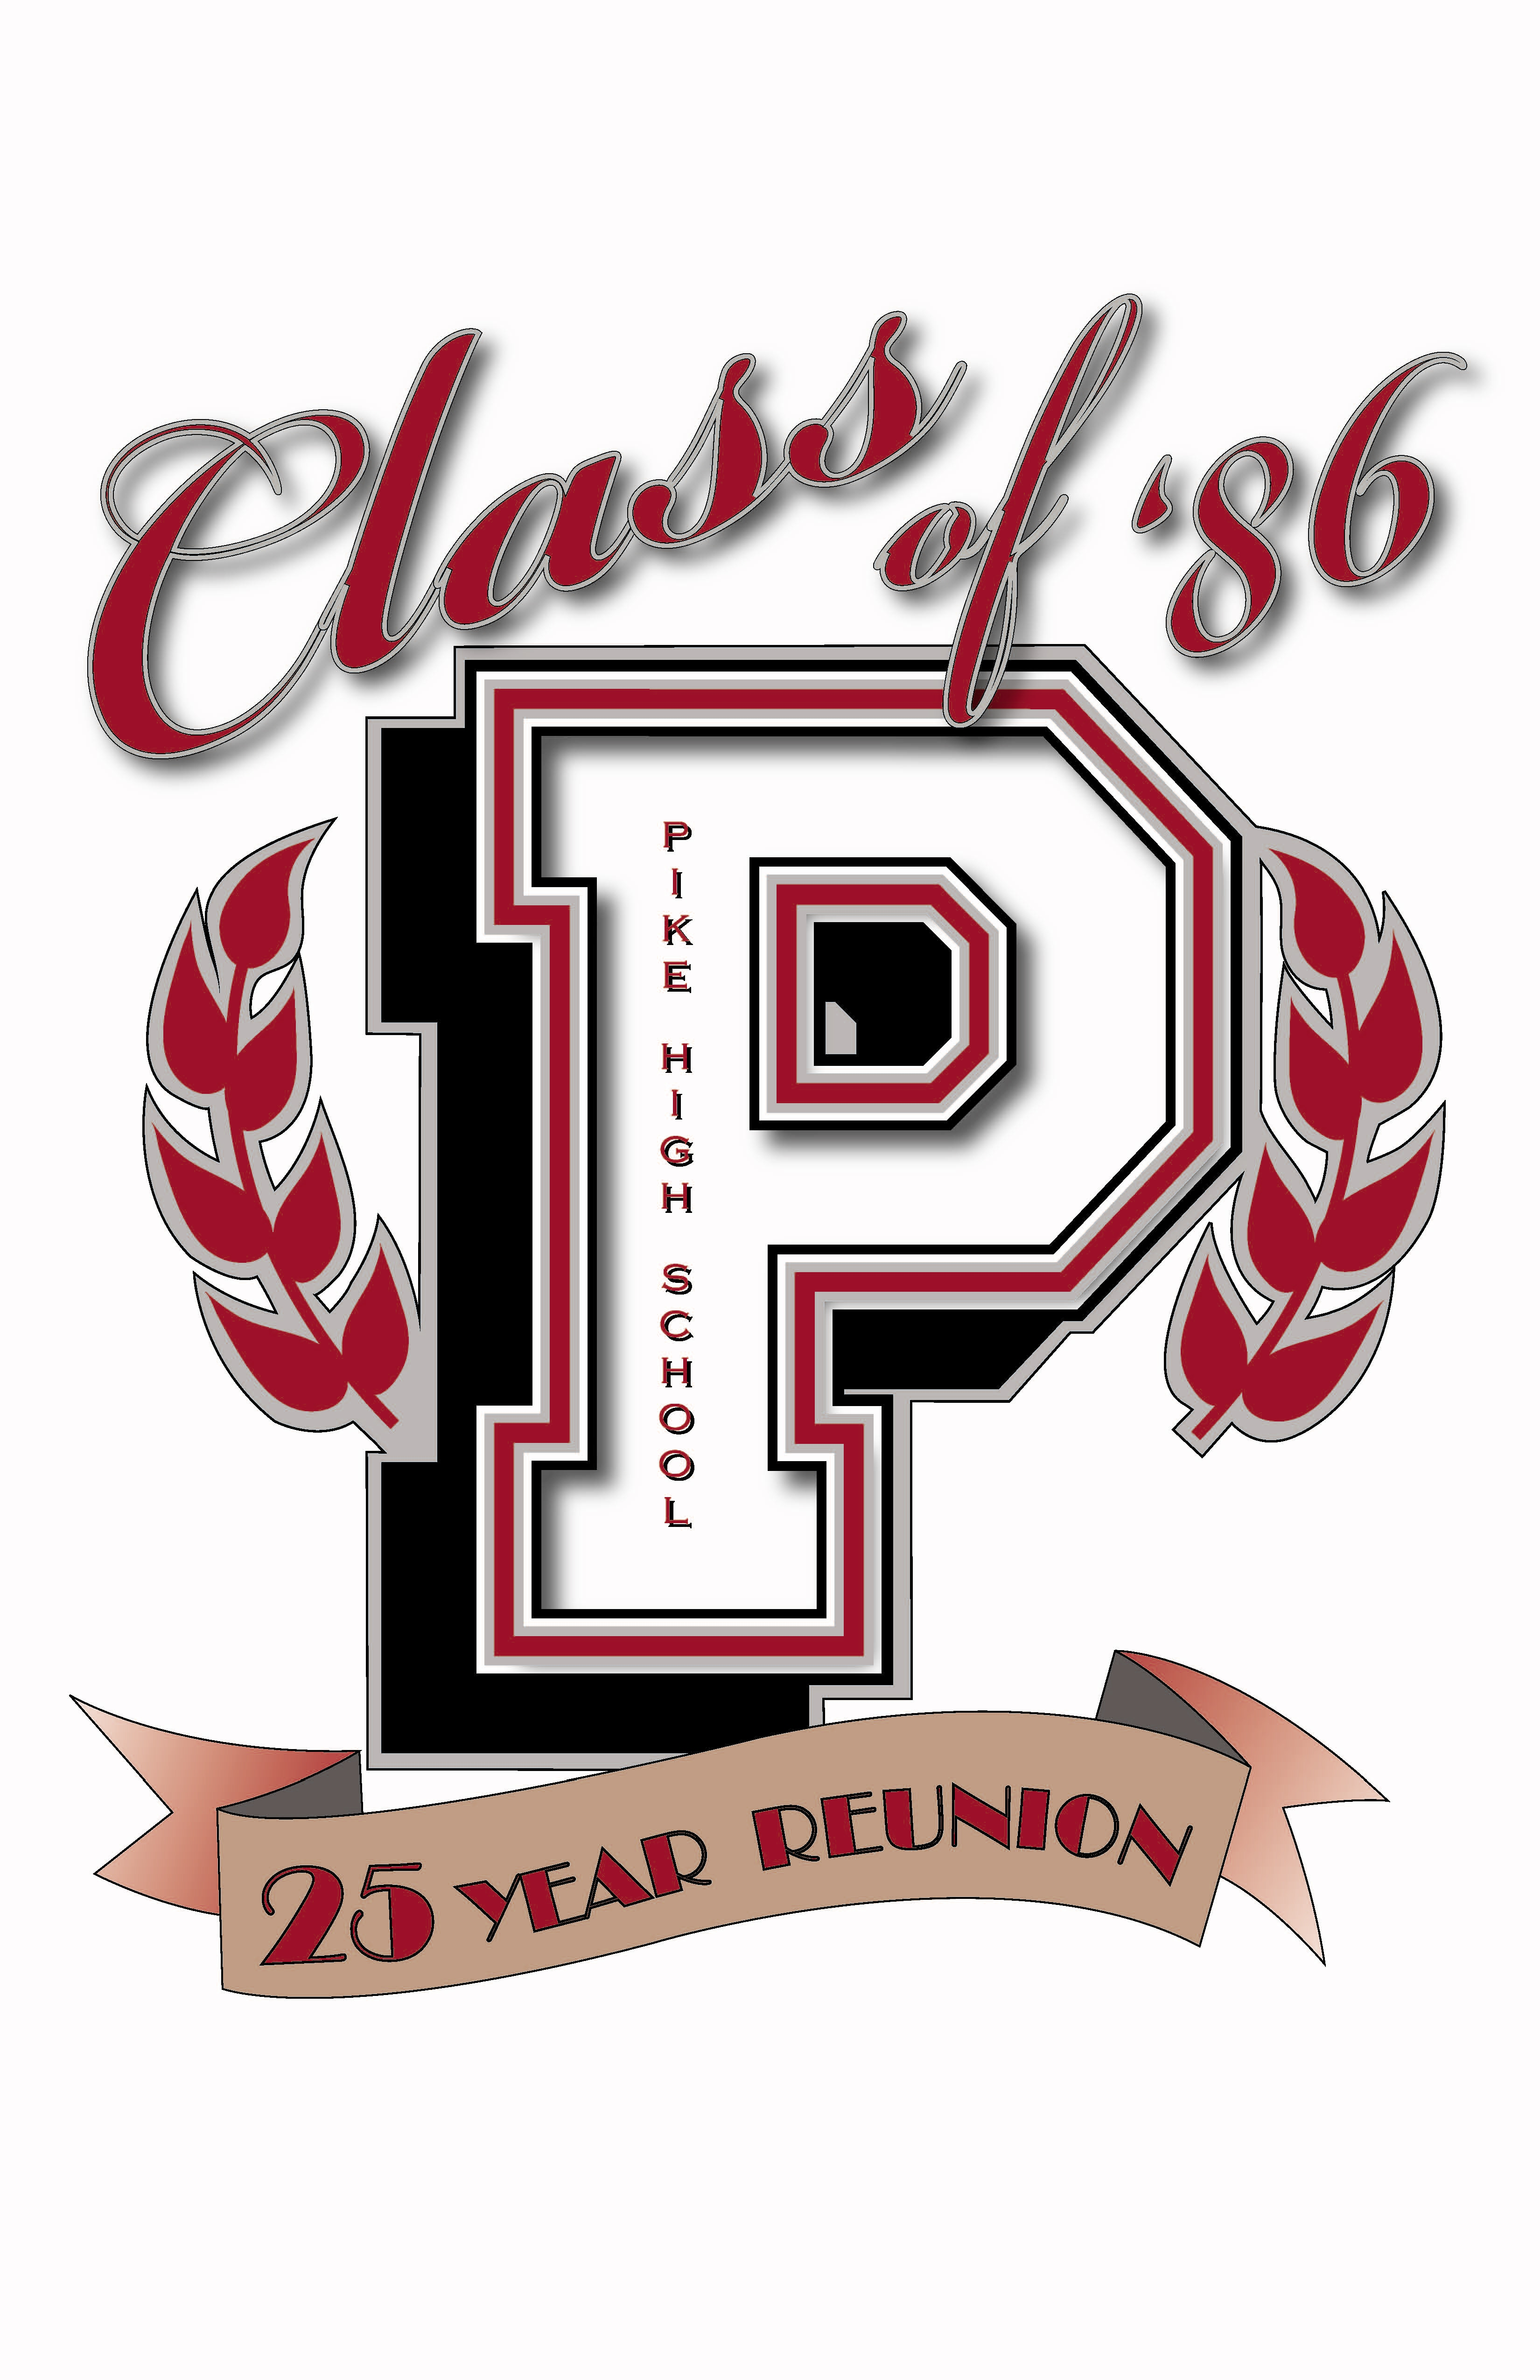 Design t shirt class - Pike High School Class Of 86 Logo Design For My 25th Class Reunion For T Shirt And Hats